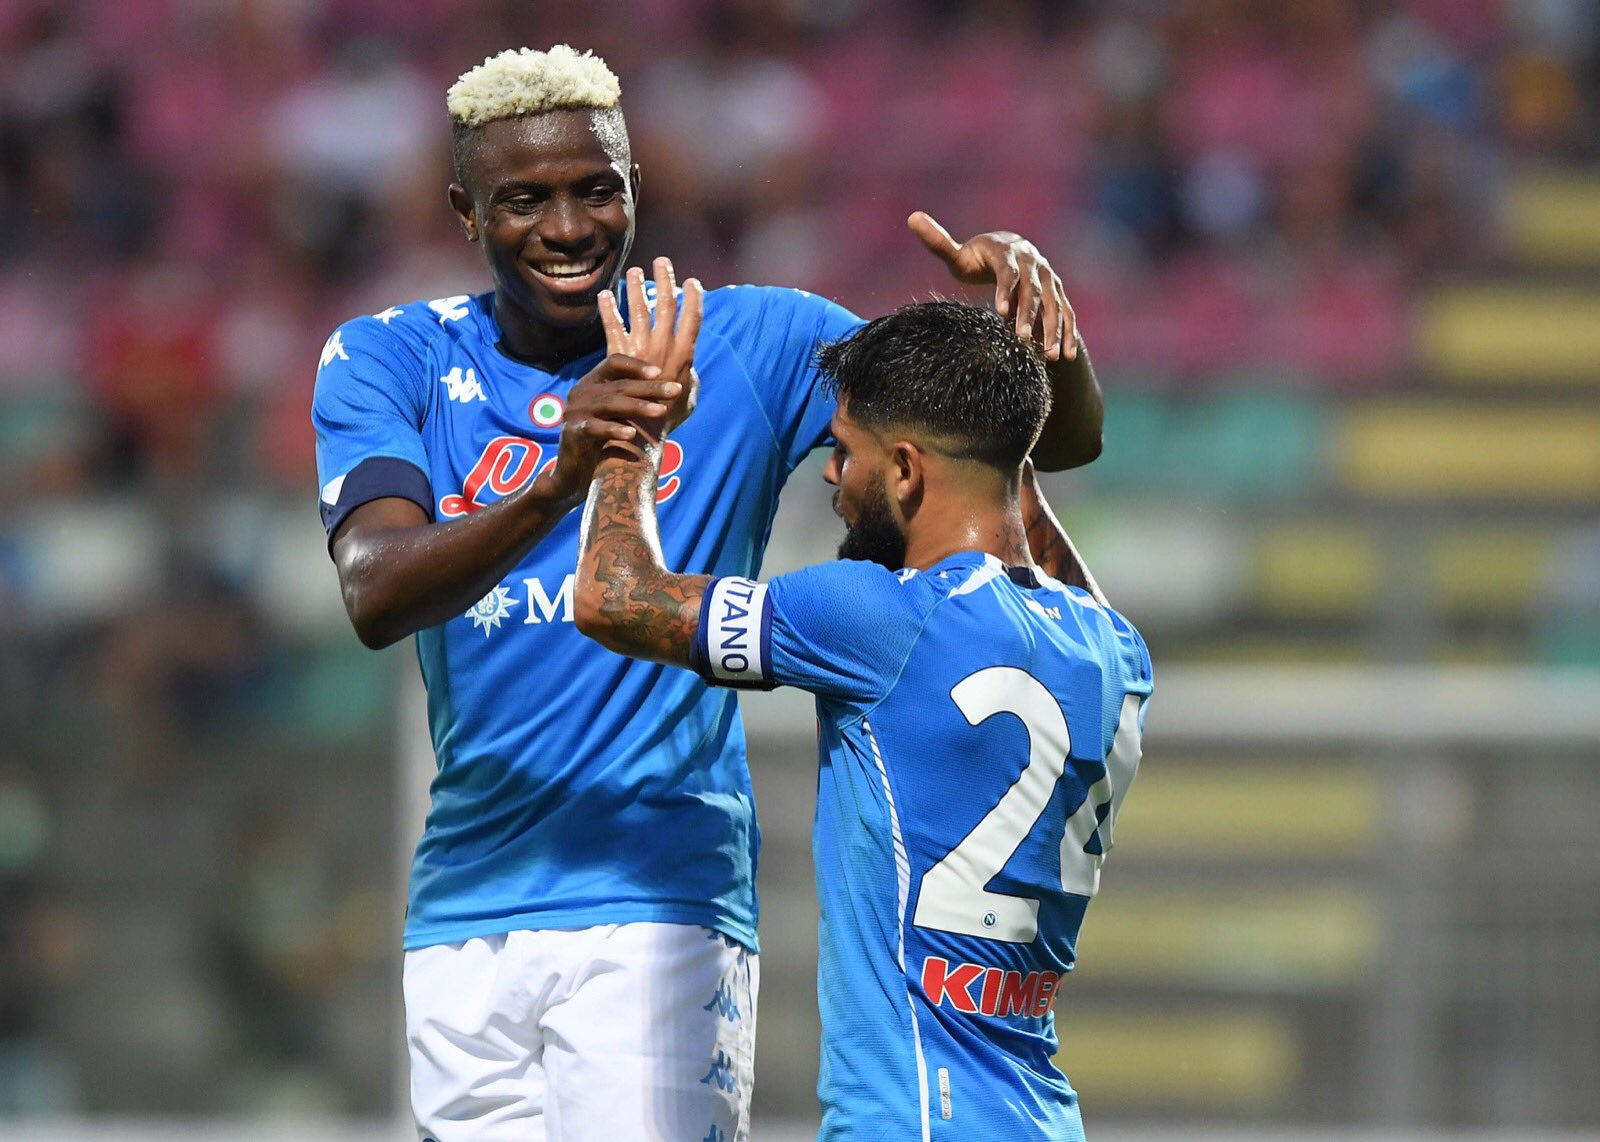 Nigerian footballer Osimhen aiming for the stars with Napoli - Sports Leo